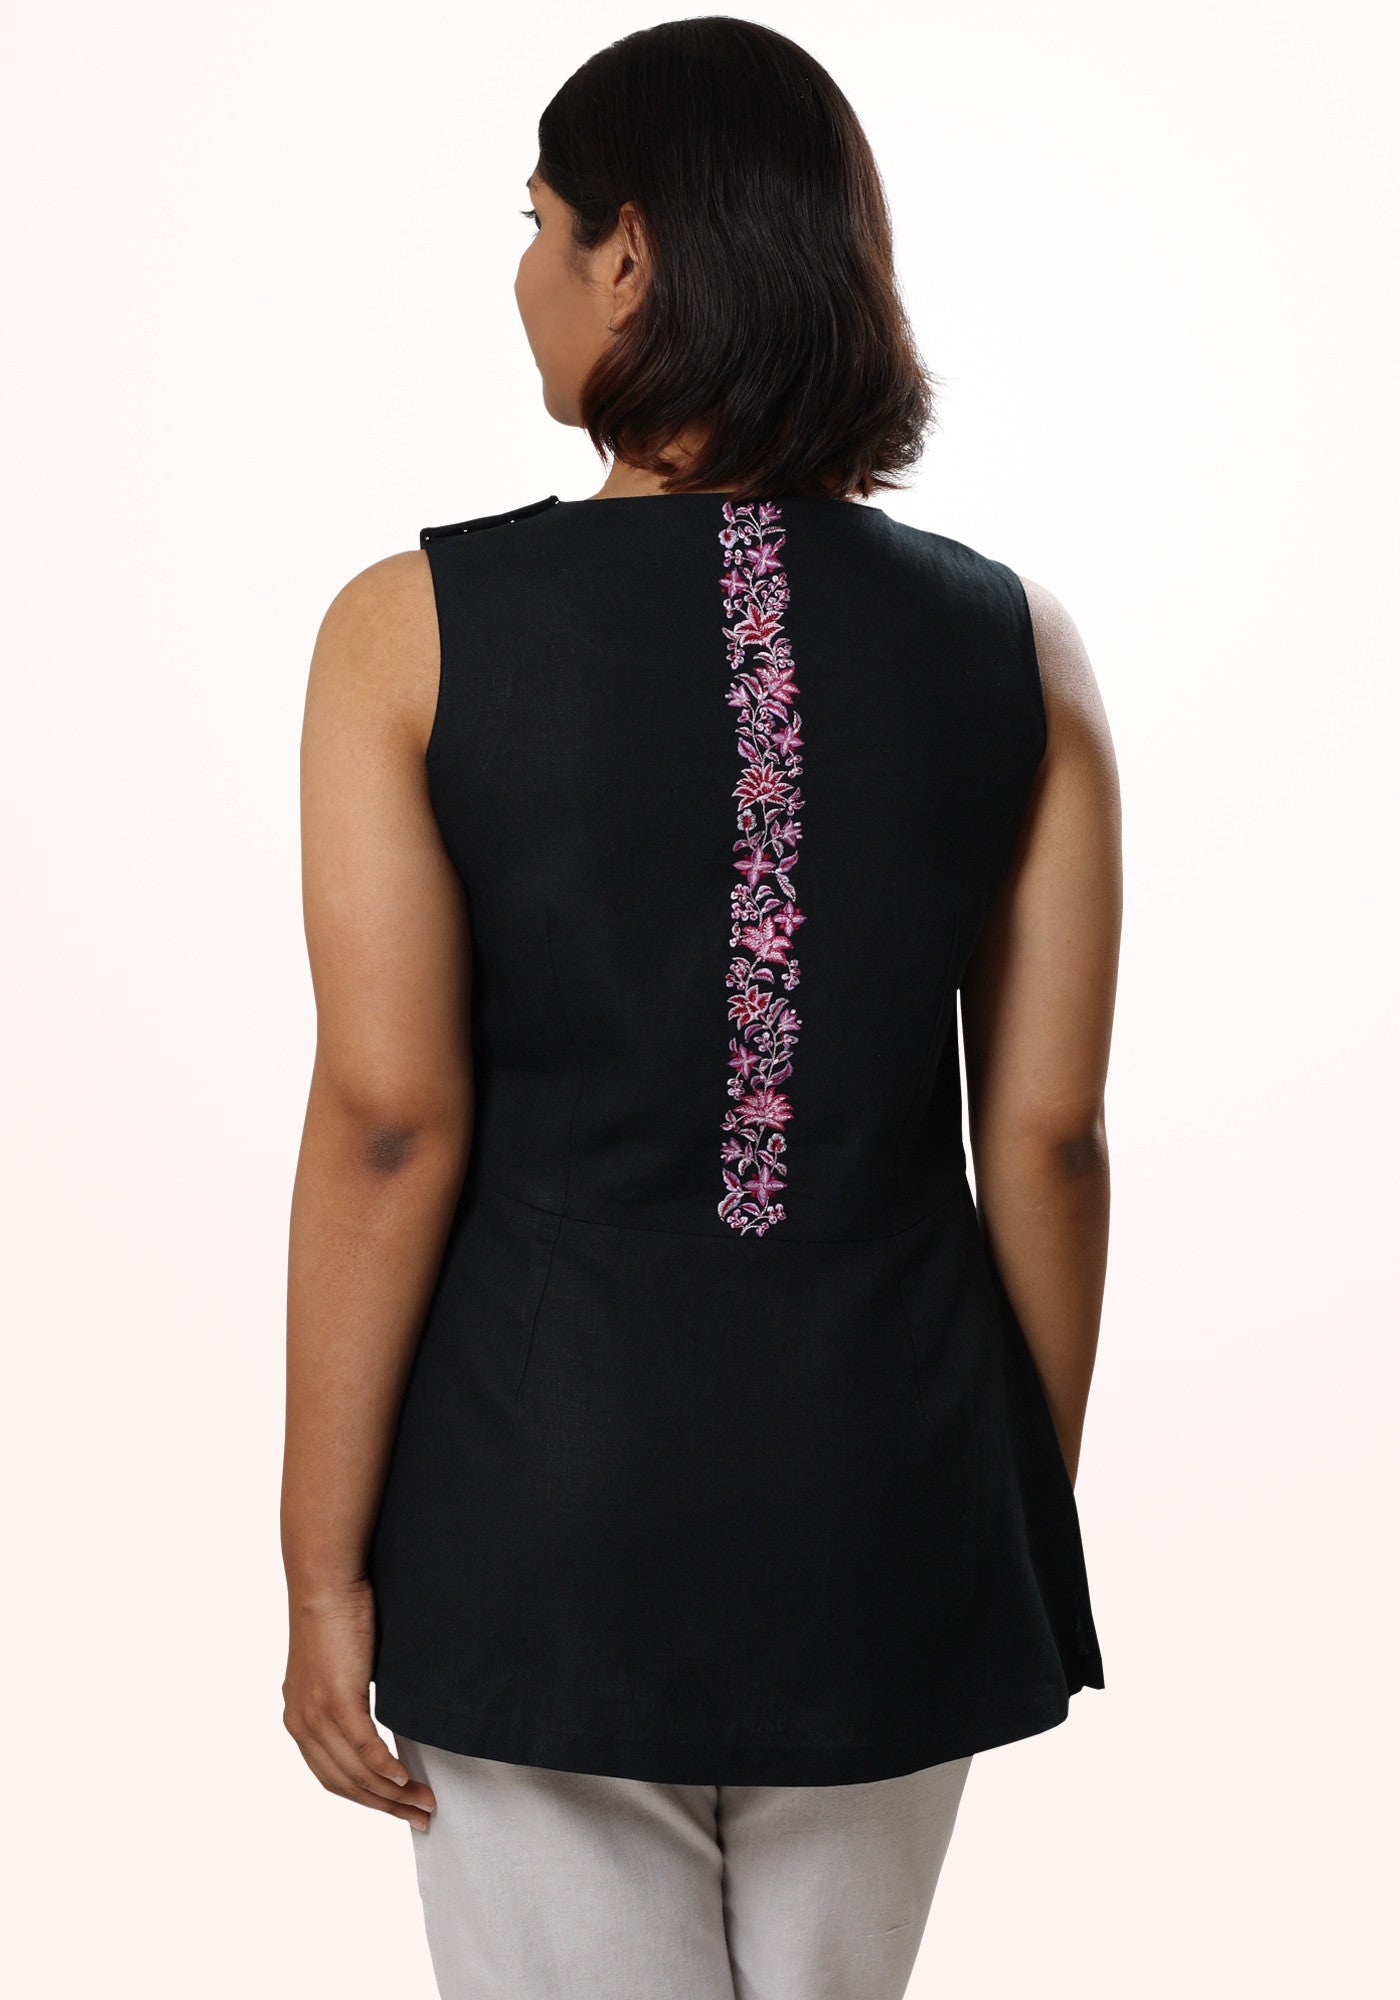 Embroidered Sleeveless Tunic - MINC ecofashion